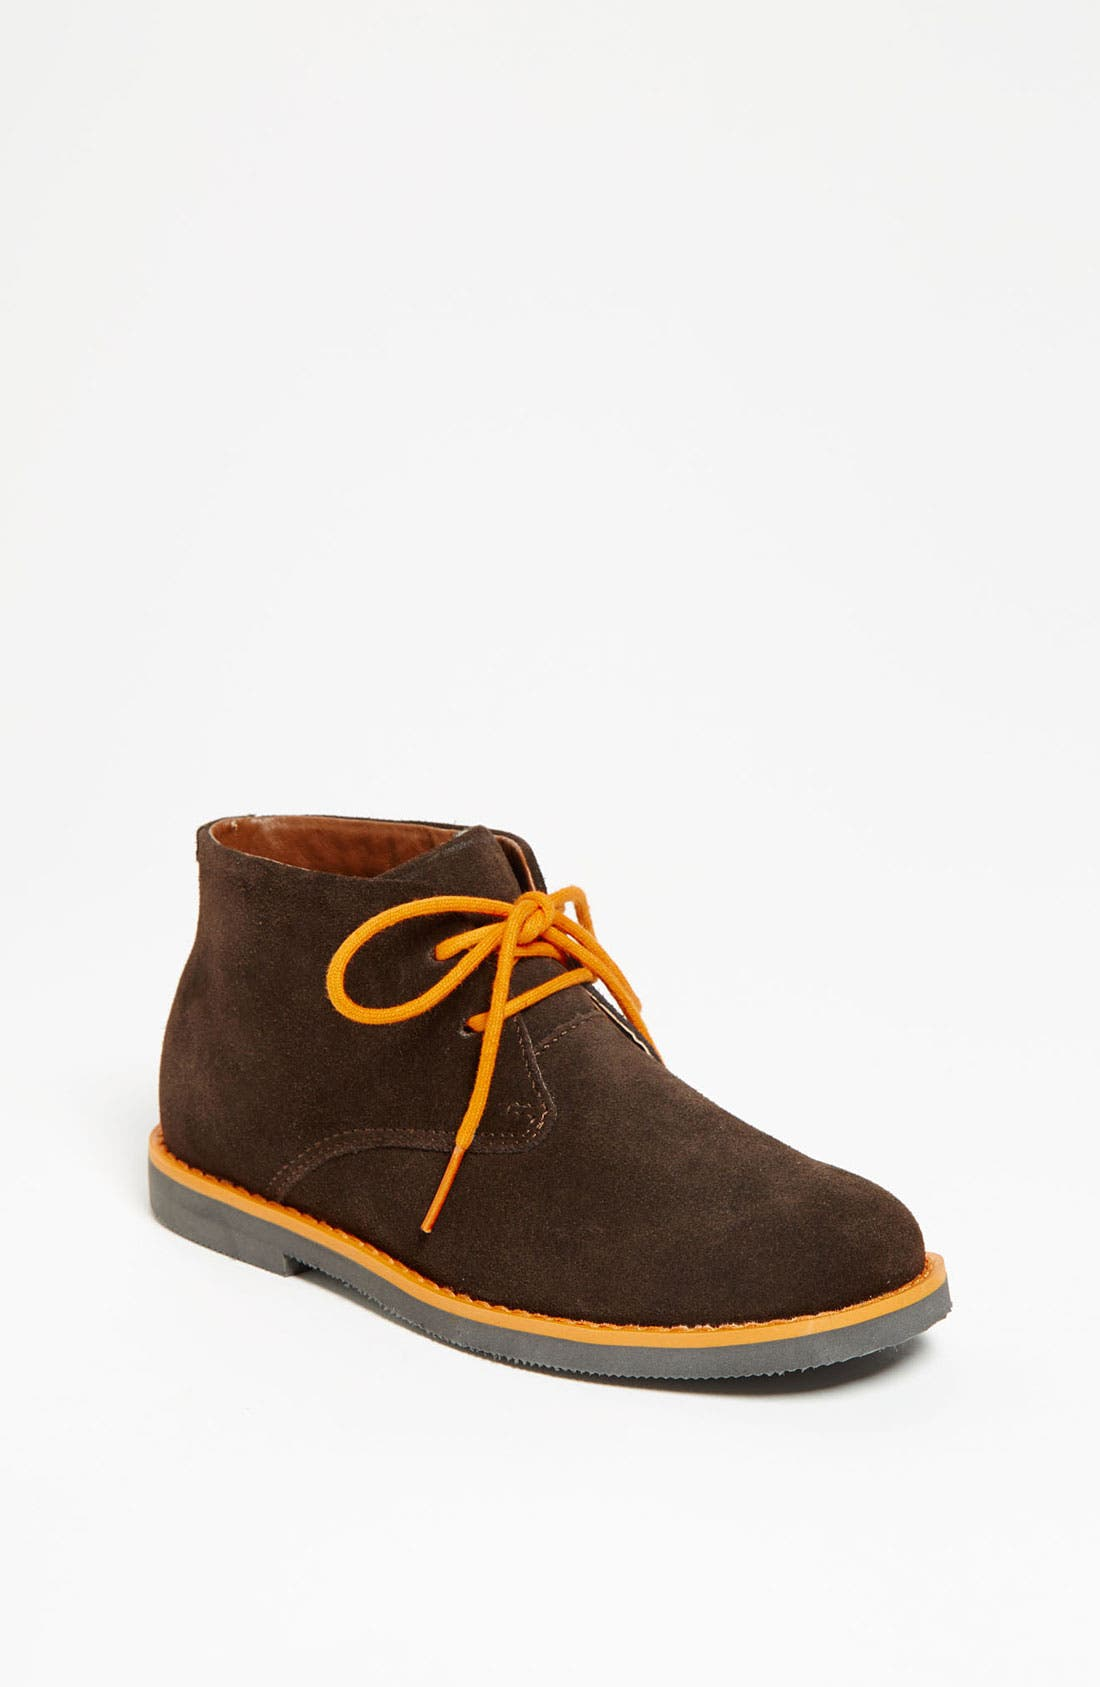 Alternate Image 1 Selected - Florsheim 'Doon' Chukka Boot (Little Kid & Big Kid)